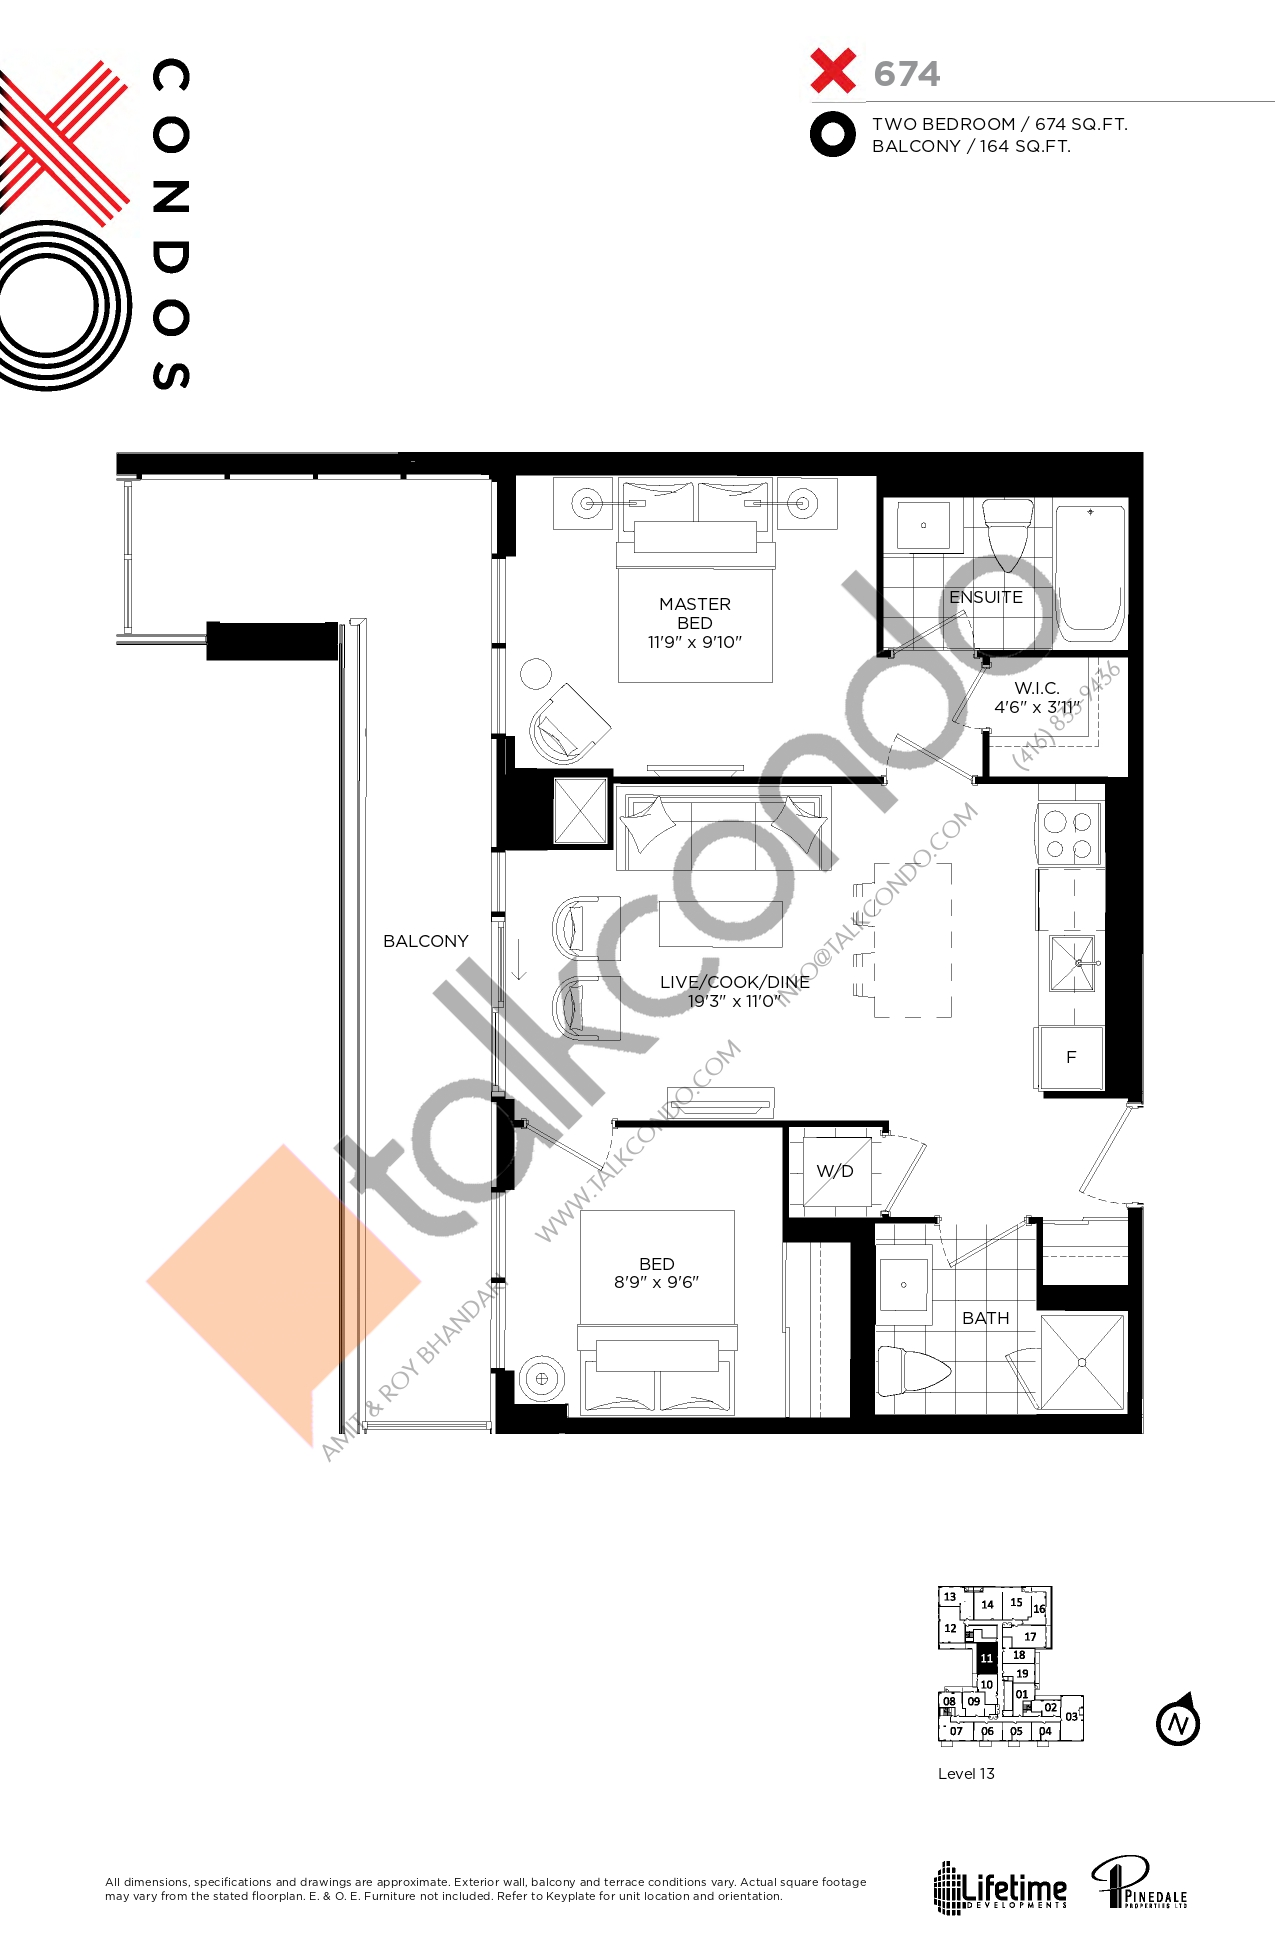 674 Floor Plan at XO Condos - 674 sq.ft